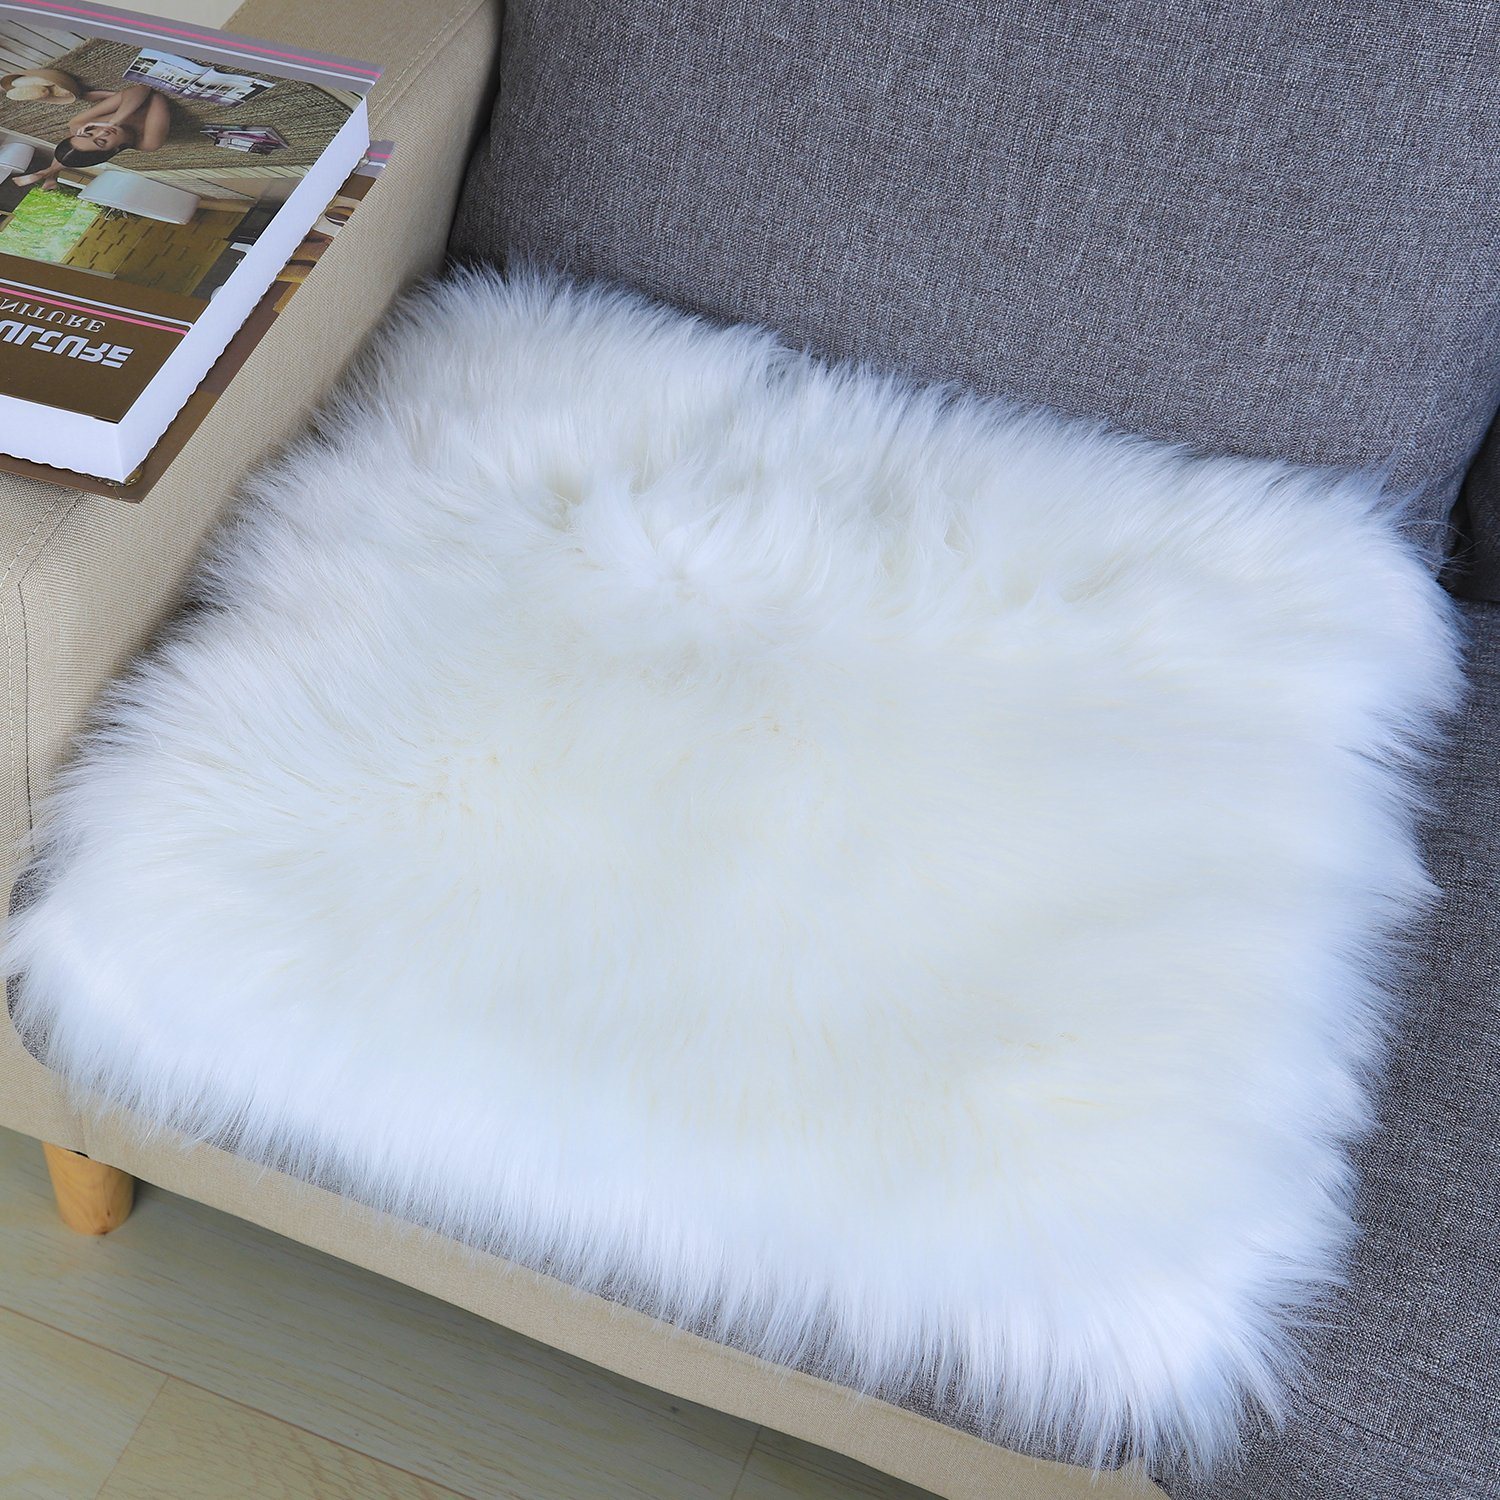 Noahas Faux Fur Sheepskin Silky Seat Cushion, Home Decor Long Wool Area Rugs Carpet, Soft Fluffy Plush Chair Seat Pads Universal Fit for Home Office Restaurant Chair (1.6x1.6 feet, White-Square)